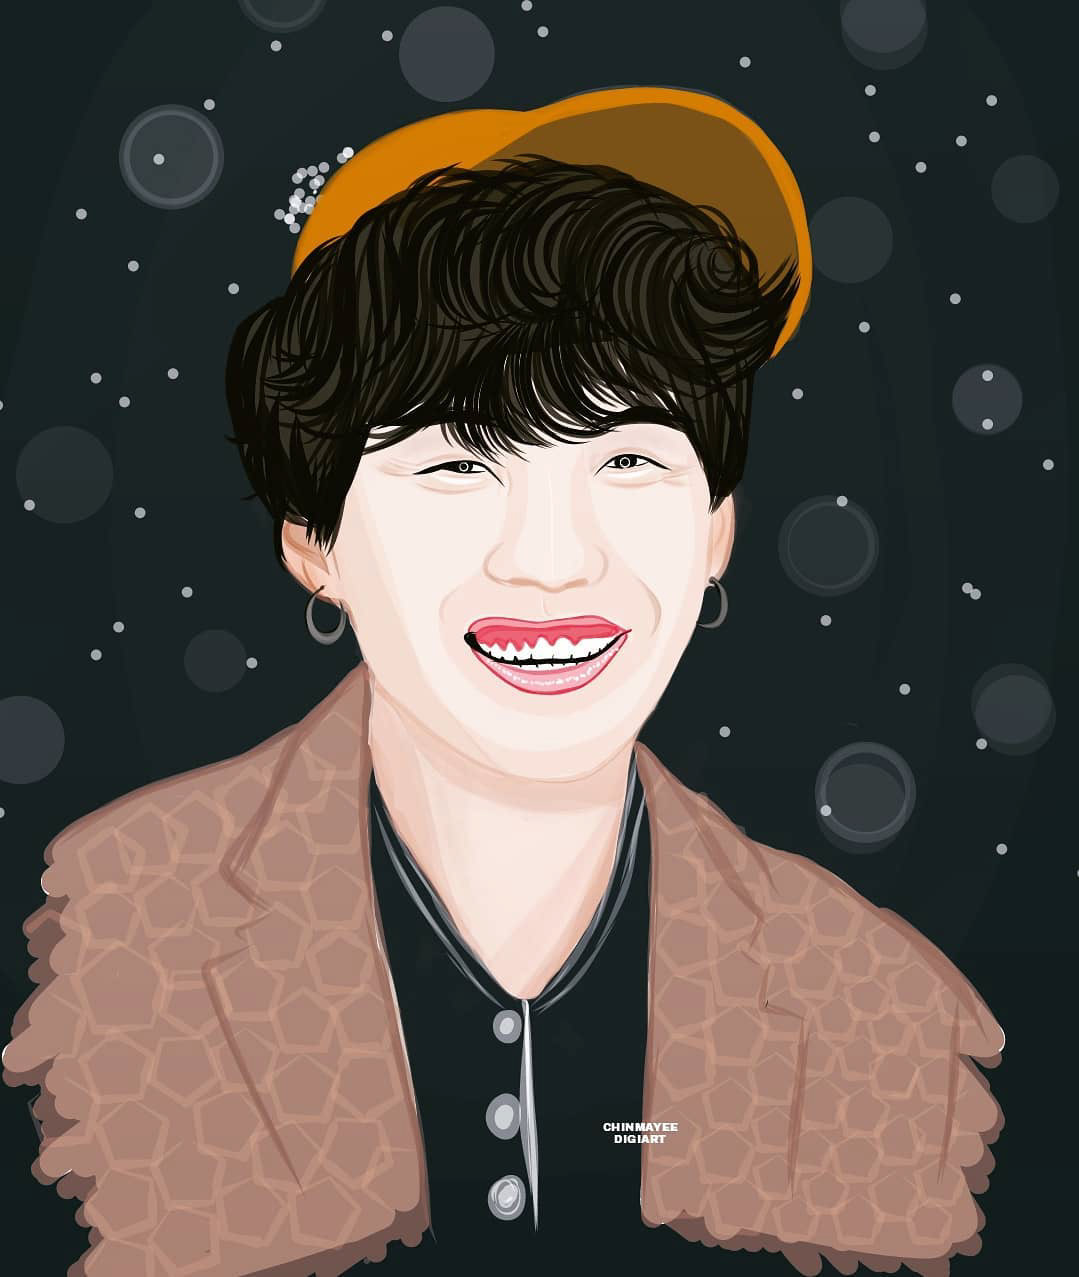 adobe draw,art,bts,BTS ARMY,BTS FanArt,BTS suga,bts yoongi,Digital Art ,Digital Drawing,Drawing ,fanart,ILLUSTRATION ,kpop fanart,Min yoongi,Suga,yoongi